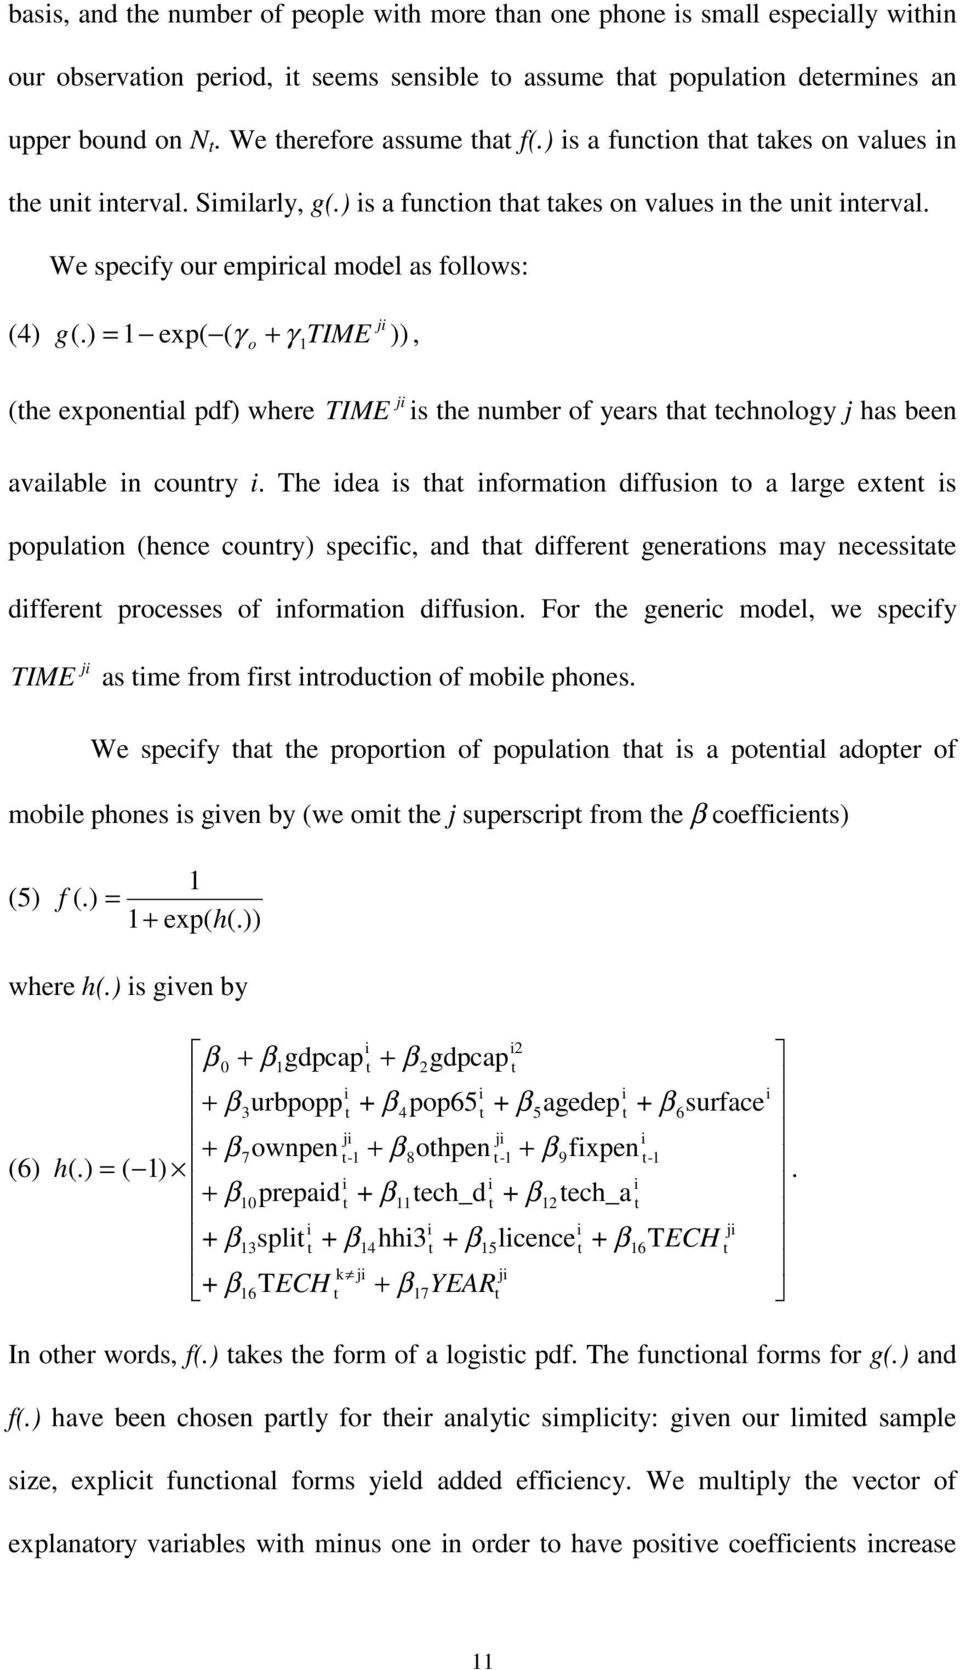 ) = 1 exp( ( γ o + γ 1TIME )), (he exponenial pdf) where TIME is he number of years ha echnology j has been available in counry i.